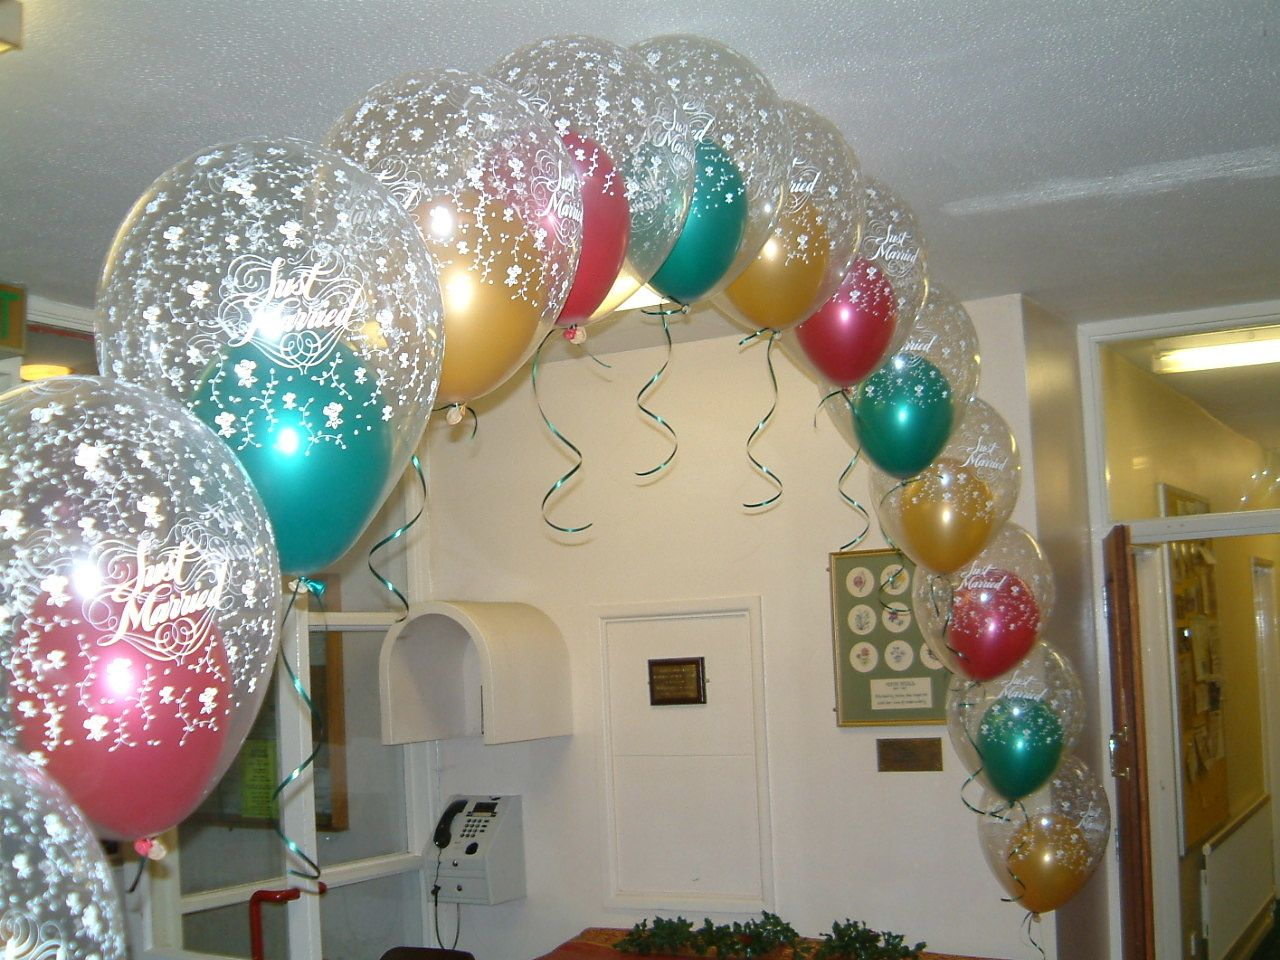 Balloon arch for wedding - Double Bubble Balloon Arches Look Fantastic And Are A Bit More Interesting Than Standard Arches